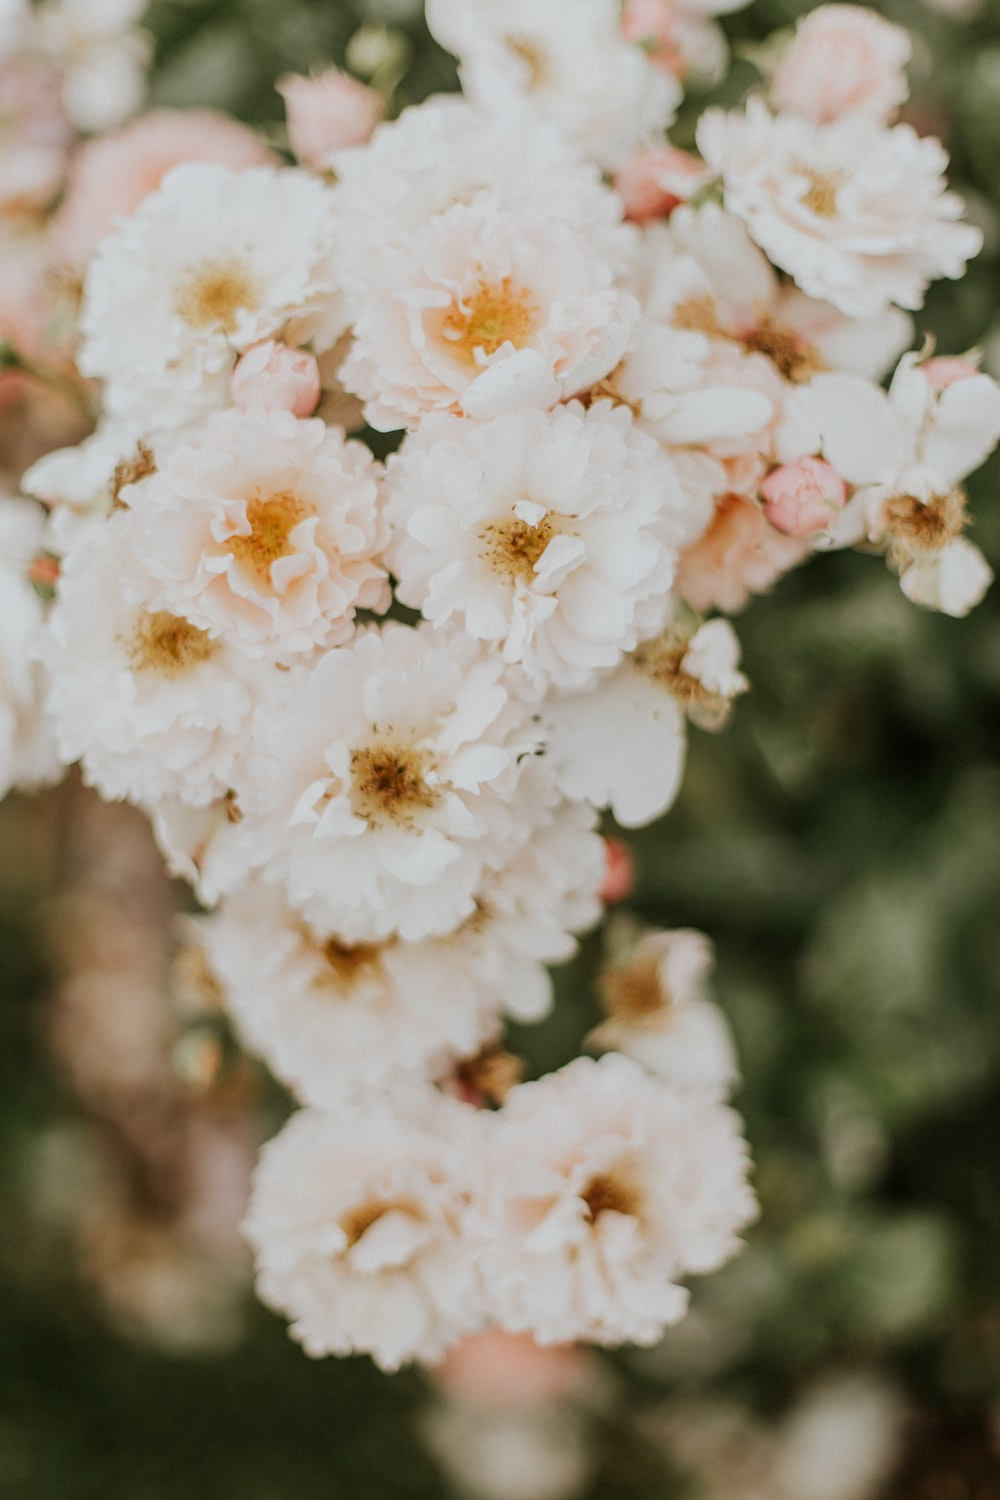 100 flower images hq download free flower pictures on unsplash white petaled flowers izmirmasajfo